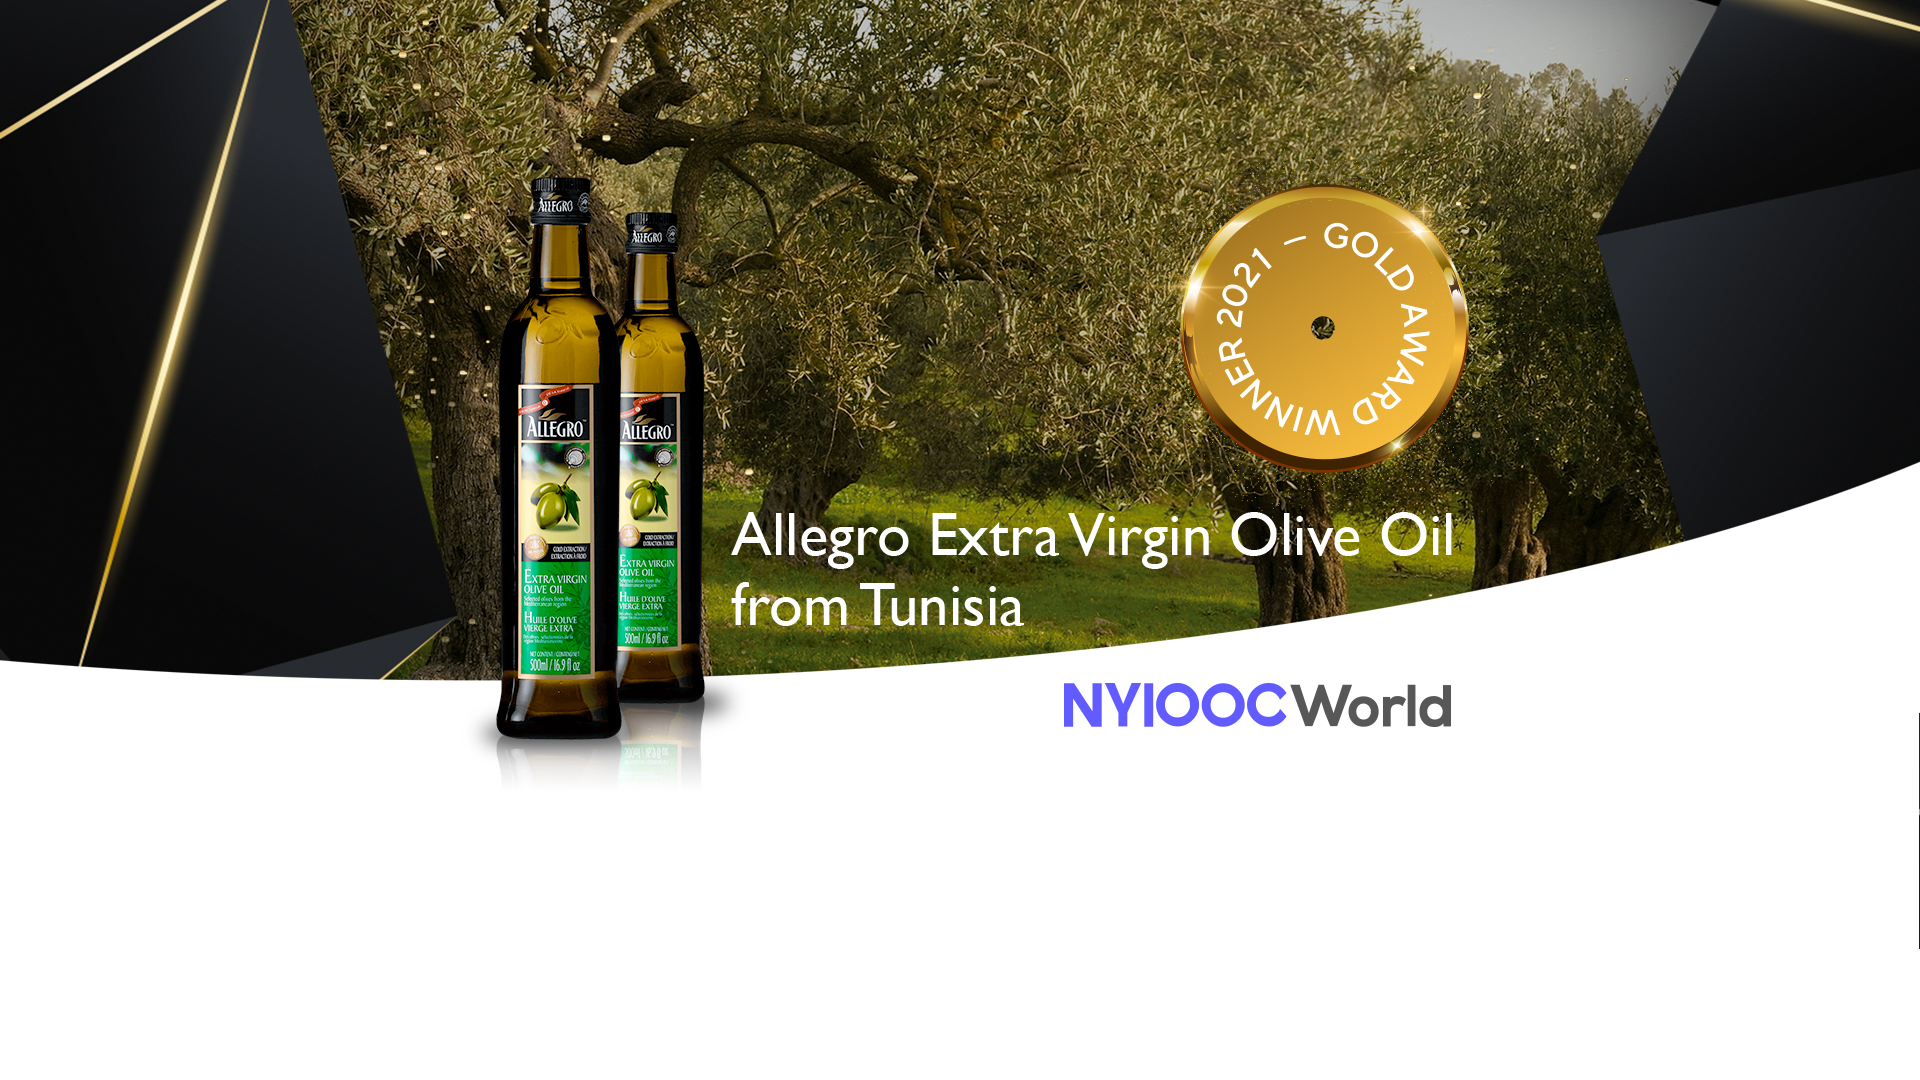 Allegro extra virgin olive oil awarded with the gold medal in NYIOOC